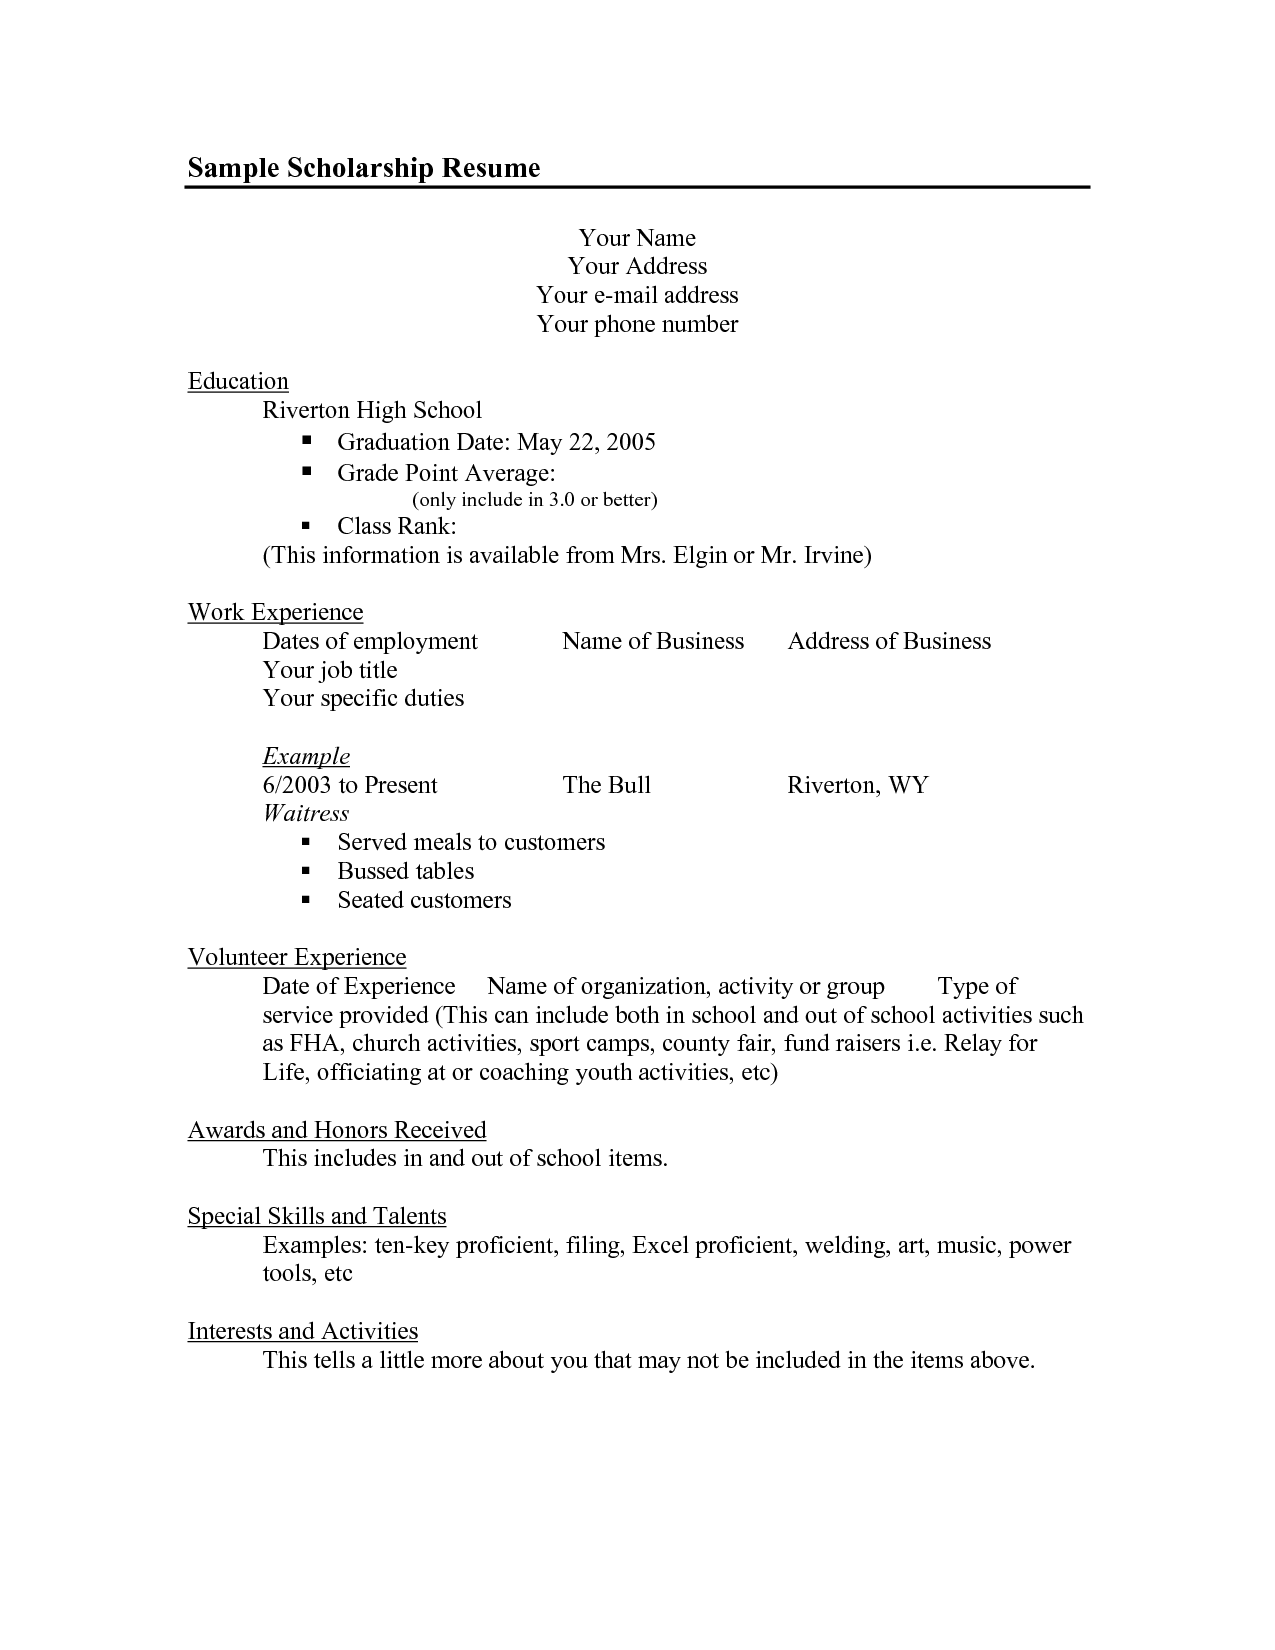 Good Scholarship Resume Templates | Sample Scholarship Resume Graduation Date  May 22, 2005